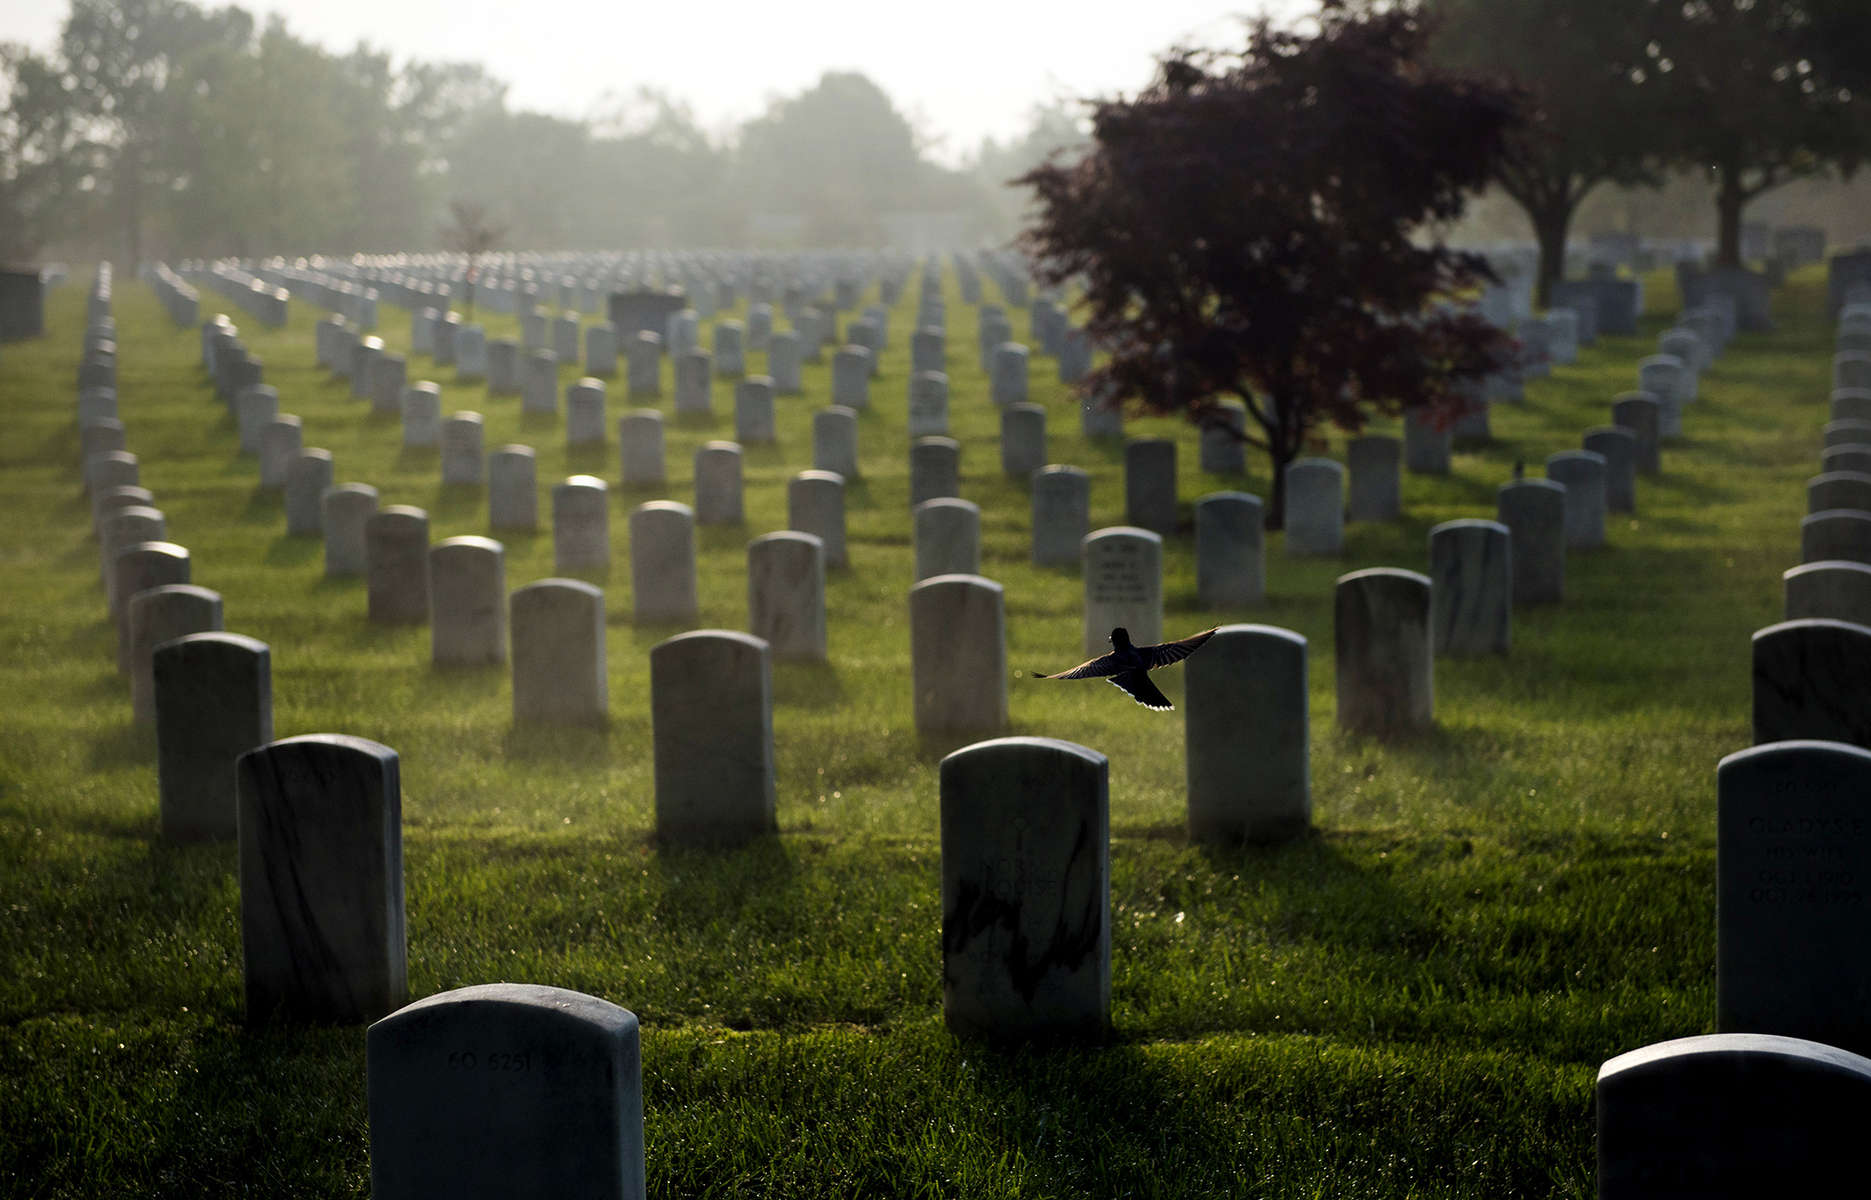 ARLINGTON, VA - MAY 22:  A bird takes flight as the sun rises over Arlington National Cemetery in section 60 on Thursday, May 22, 2014 in Arlington, VA. Hundreds of Iraq and Afghanistan war dead are buried in the section. (Photo by Amanda Voisard/For the Washington Post)